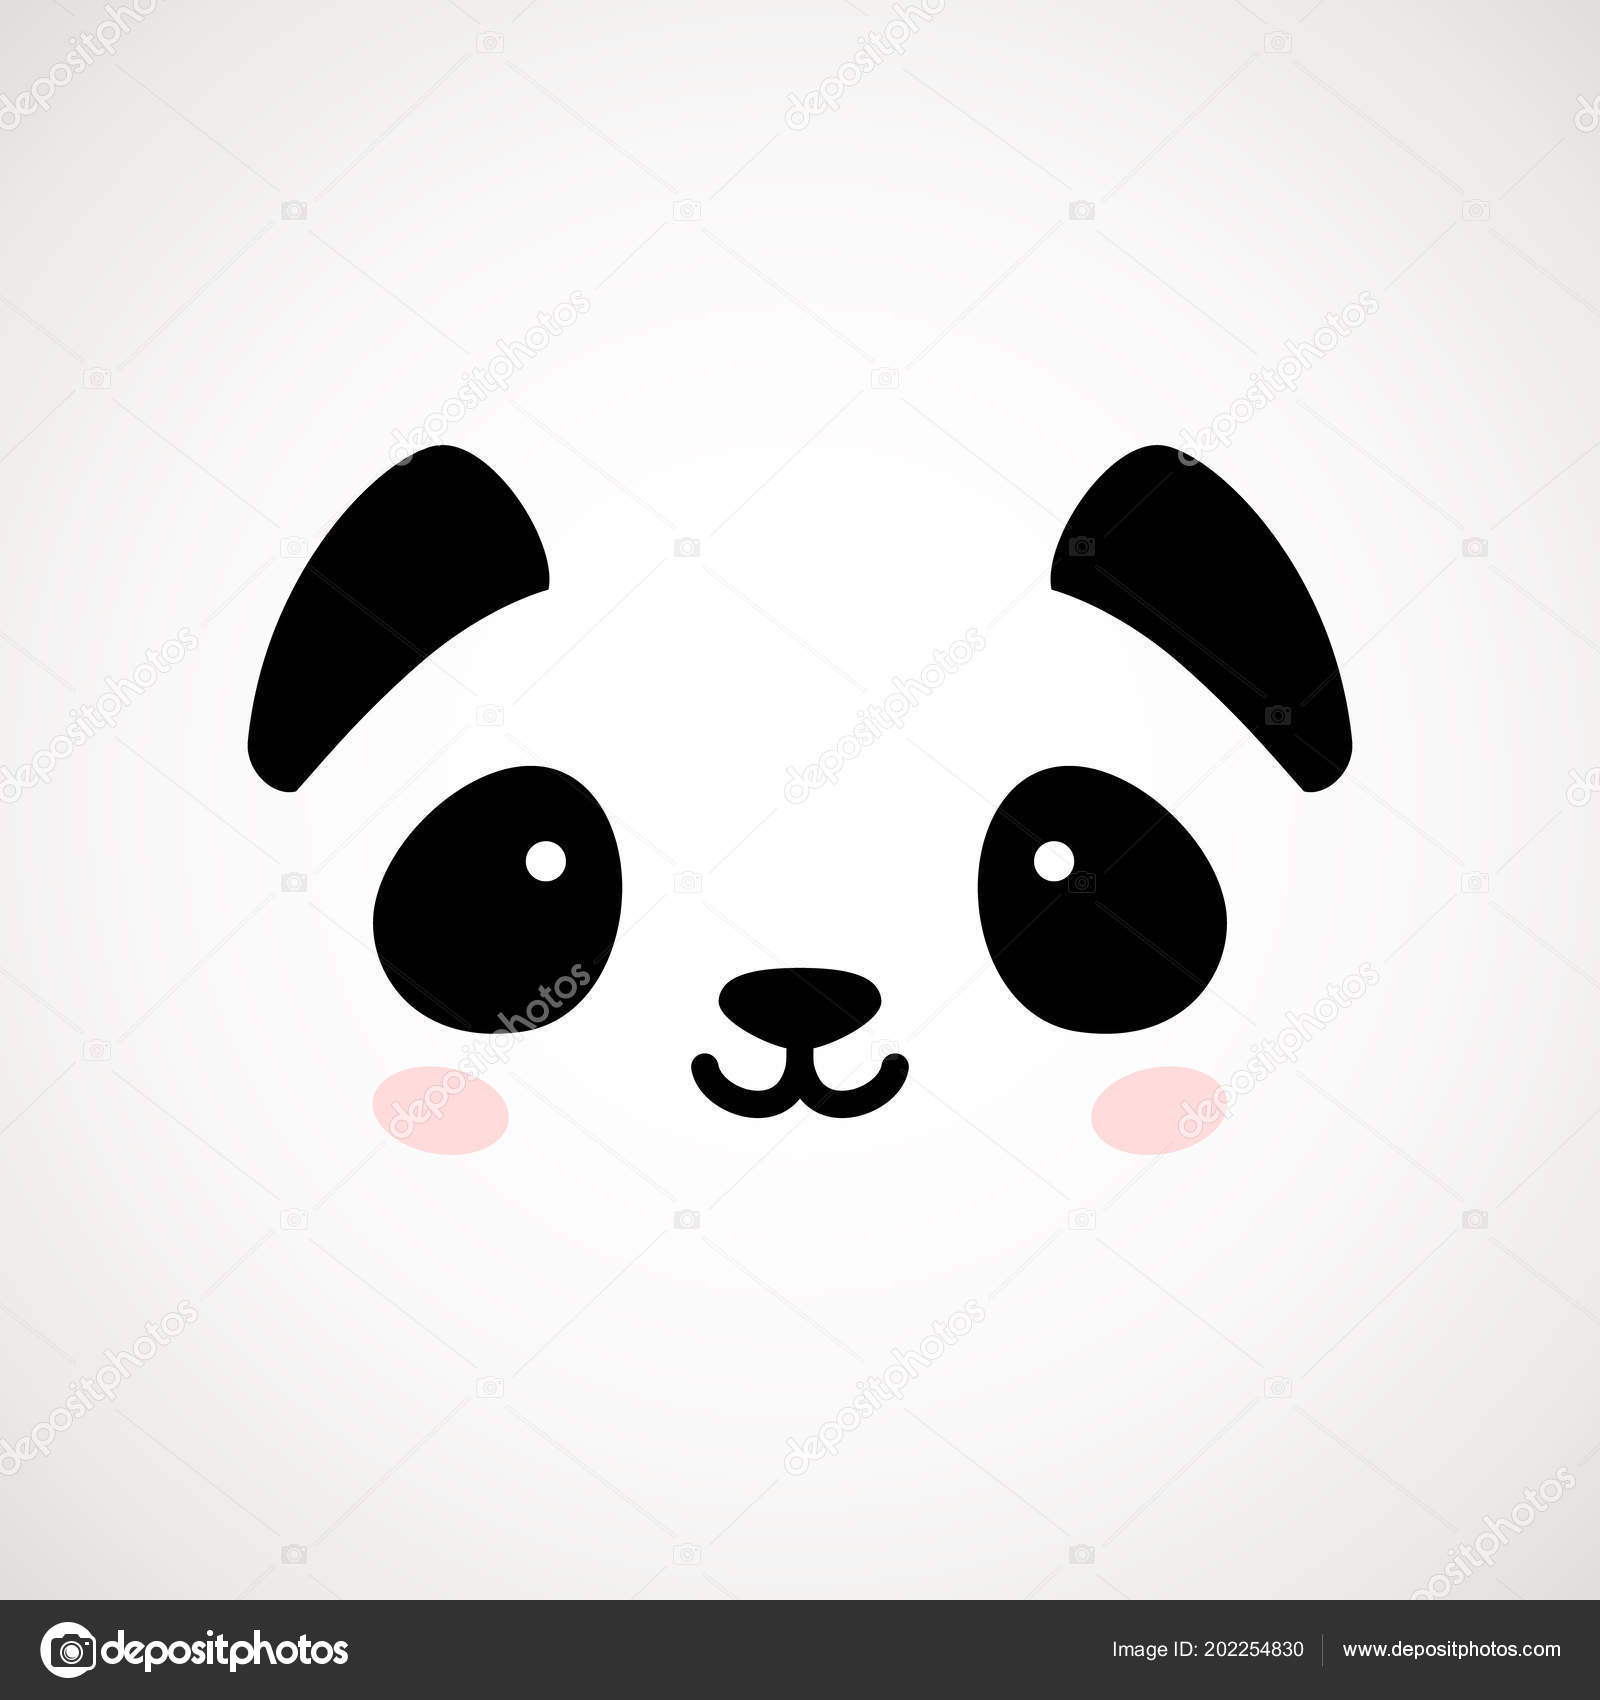 cute panda face vector illustration panda bear logo design template